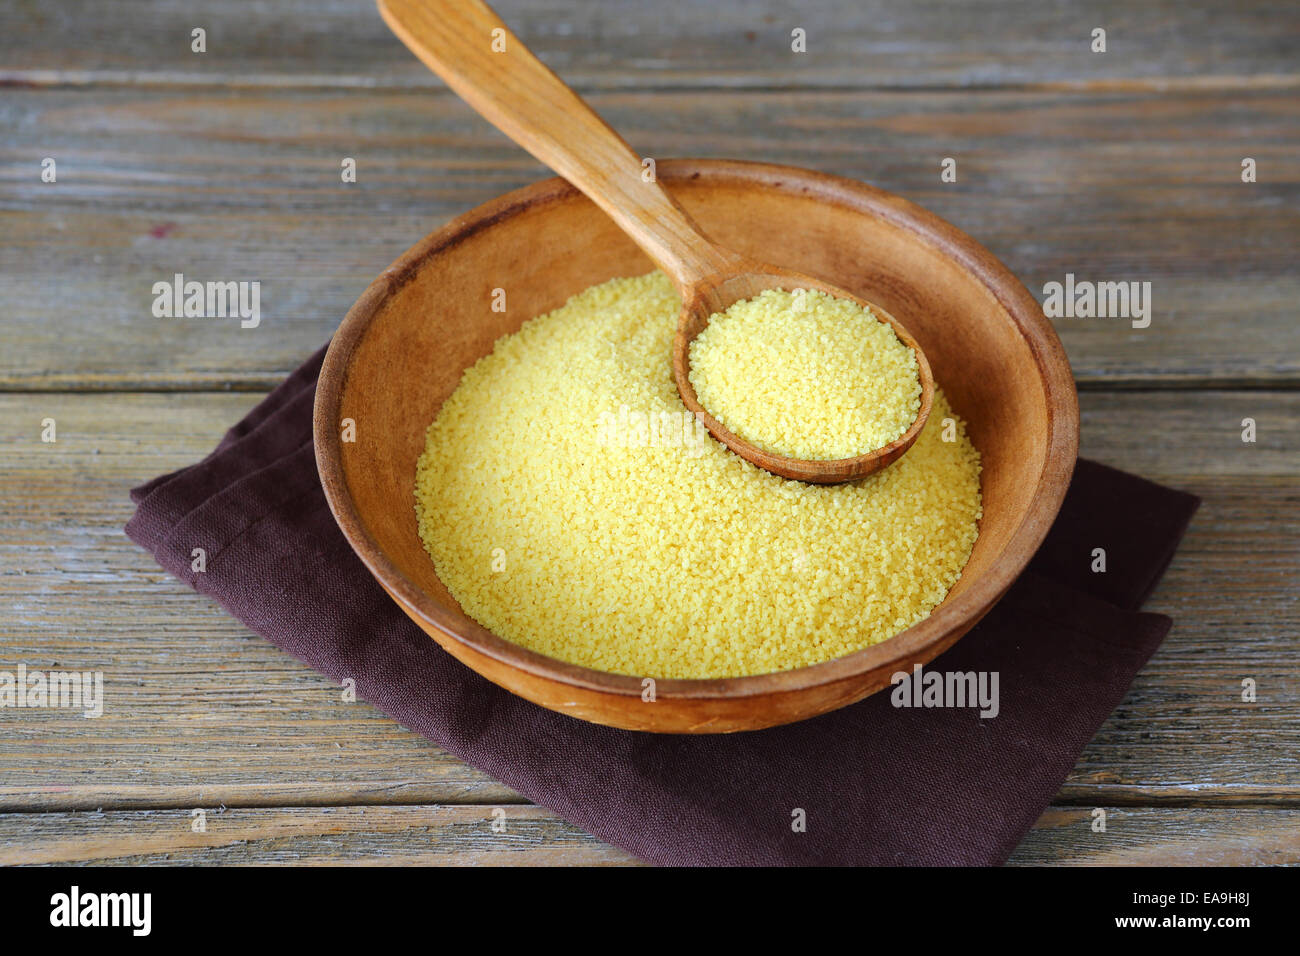 Arabic couscous in a bowl on wooden boards, food ingredient - Stock Image